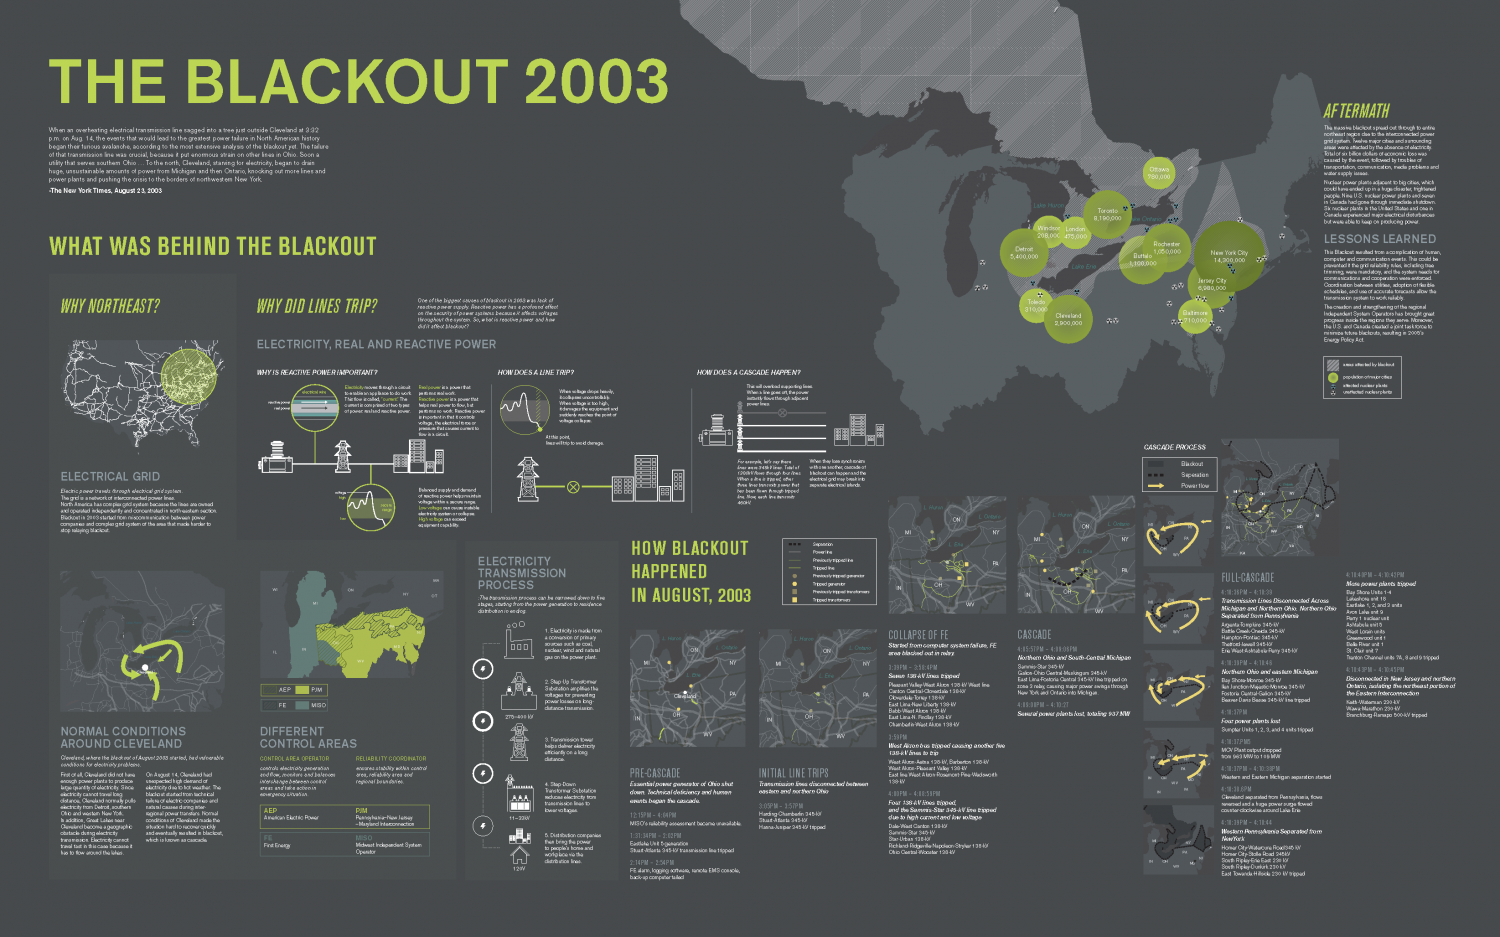 The Blackout 2003 Infographic